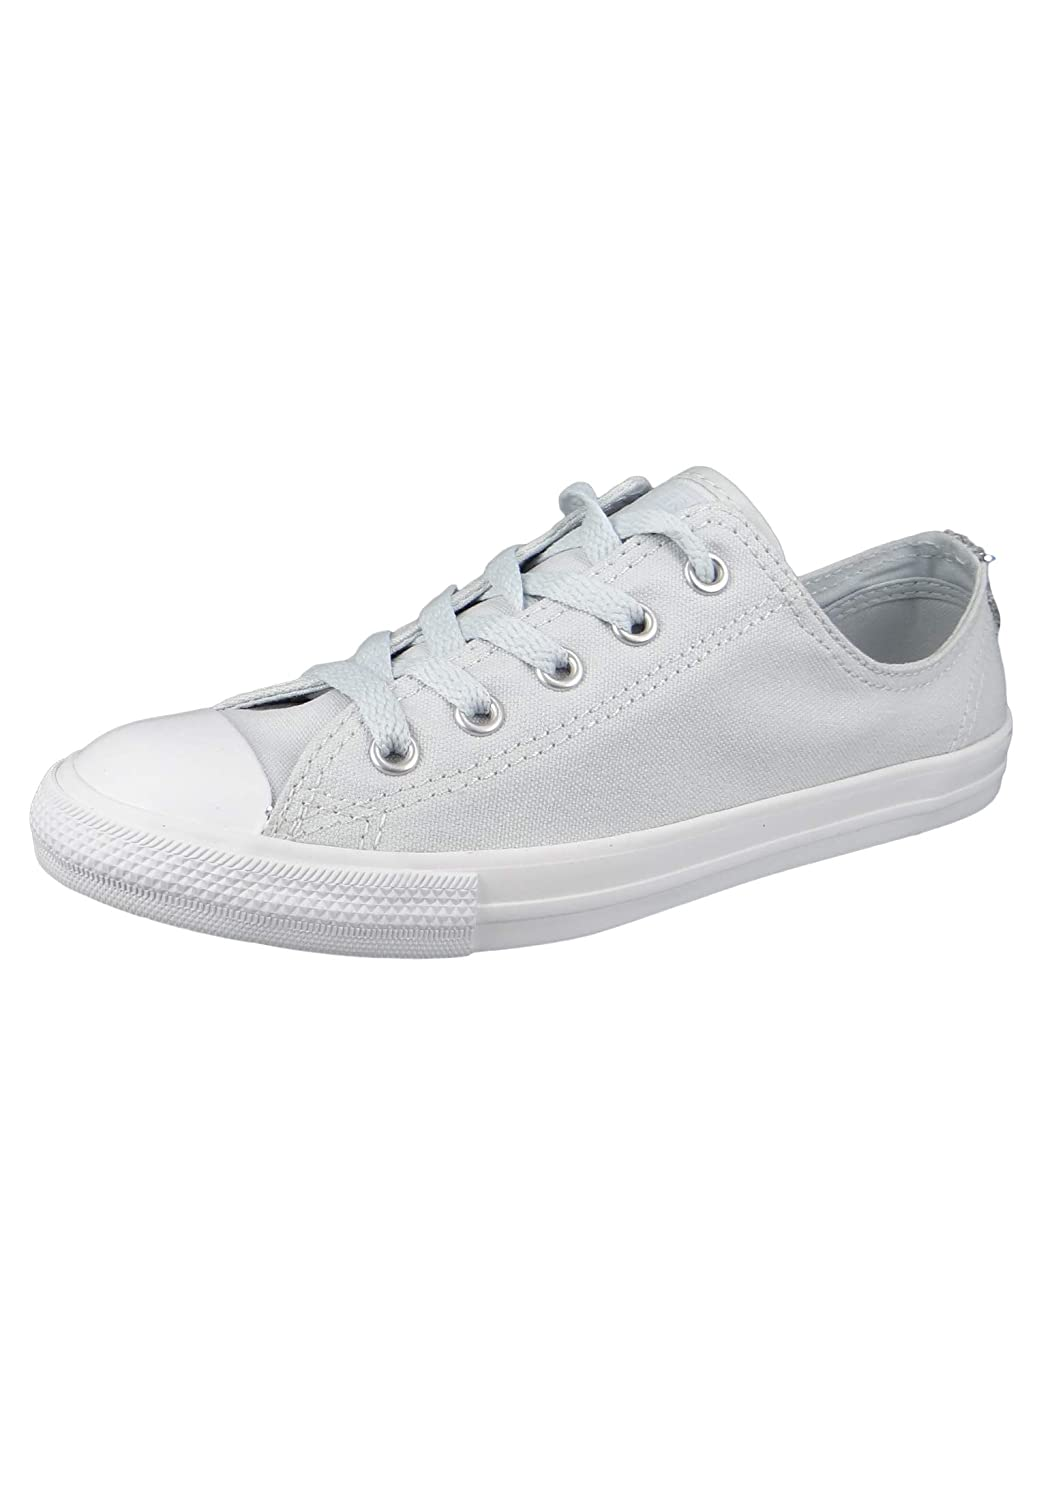 1af4a7efeaf676 Converse Chucks 562476C White Chuck Taylor All Star Dainty OX Satin Pure  Platinum Silver White